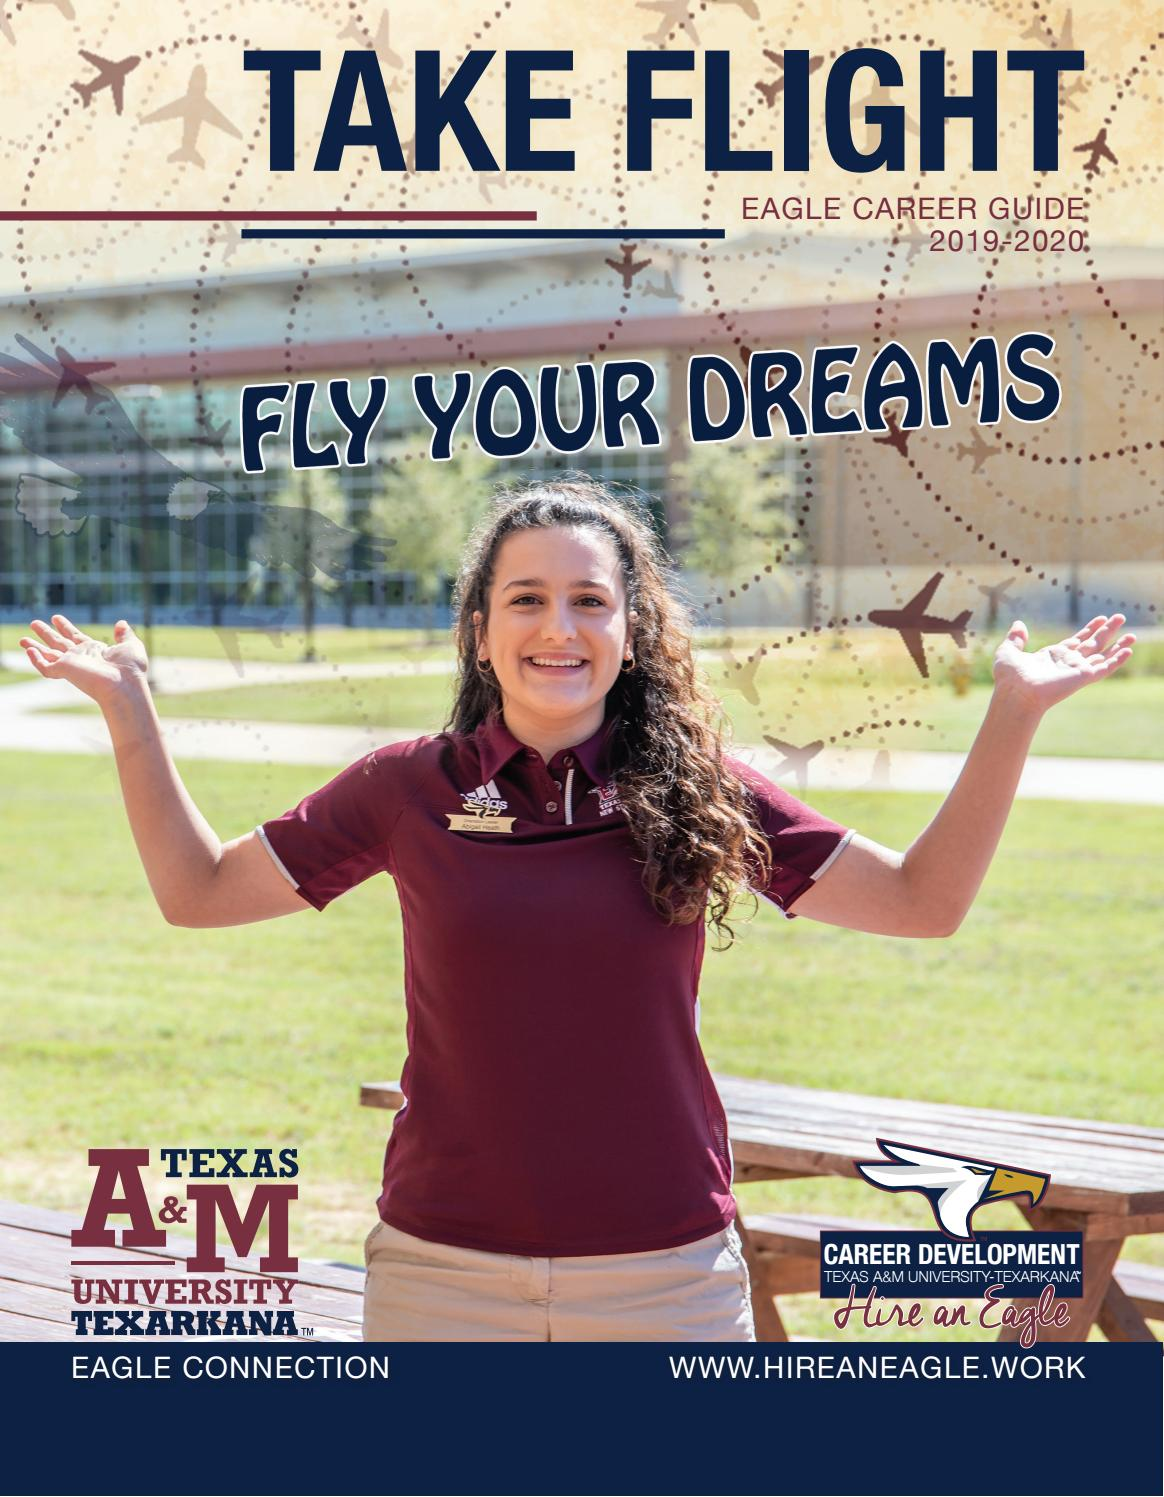 Career Fair Tamu Spring 2020.Take Flight Magazine Texas A M University Texarkana By